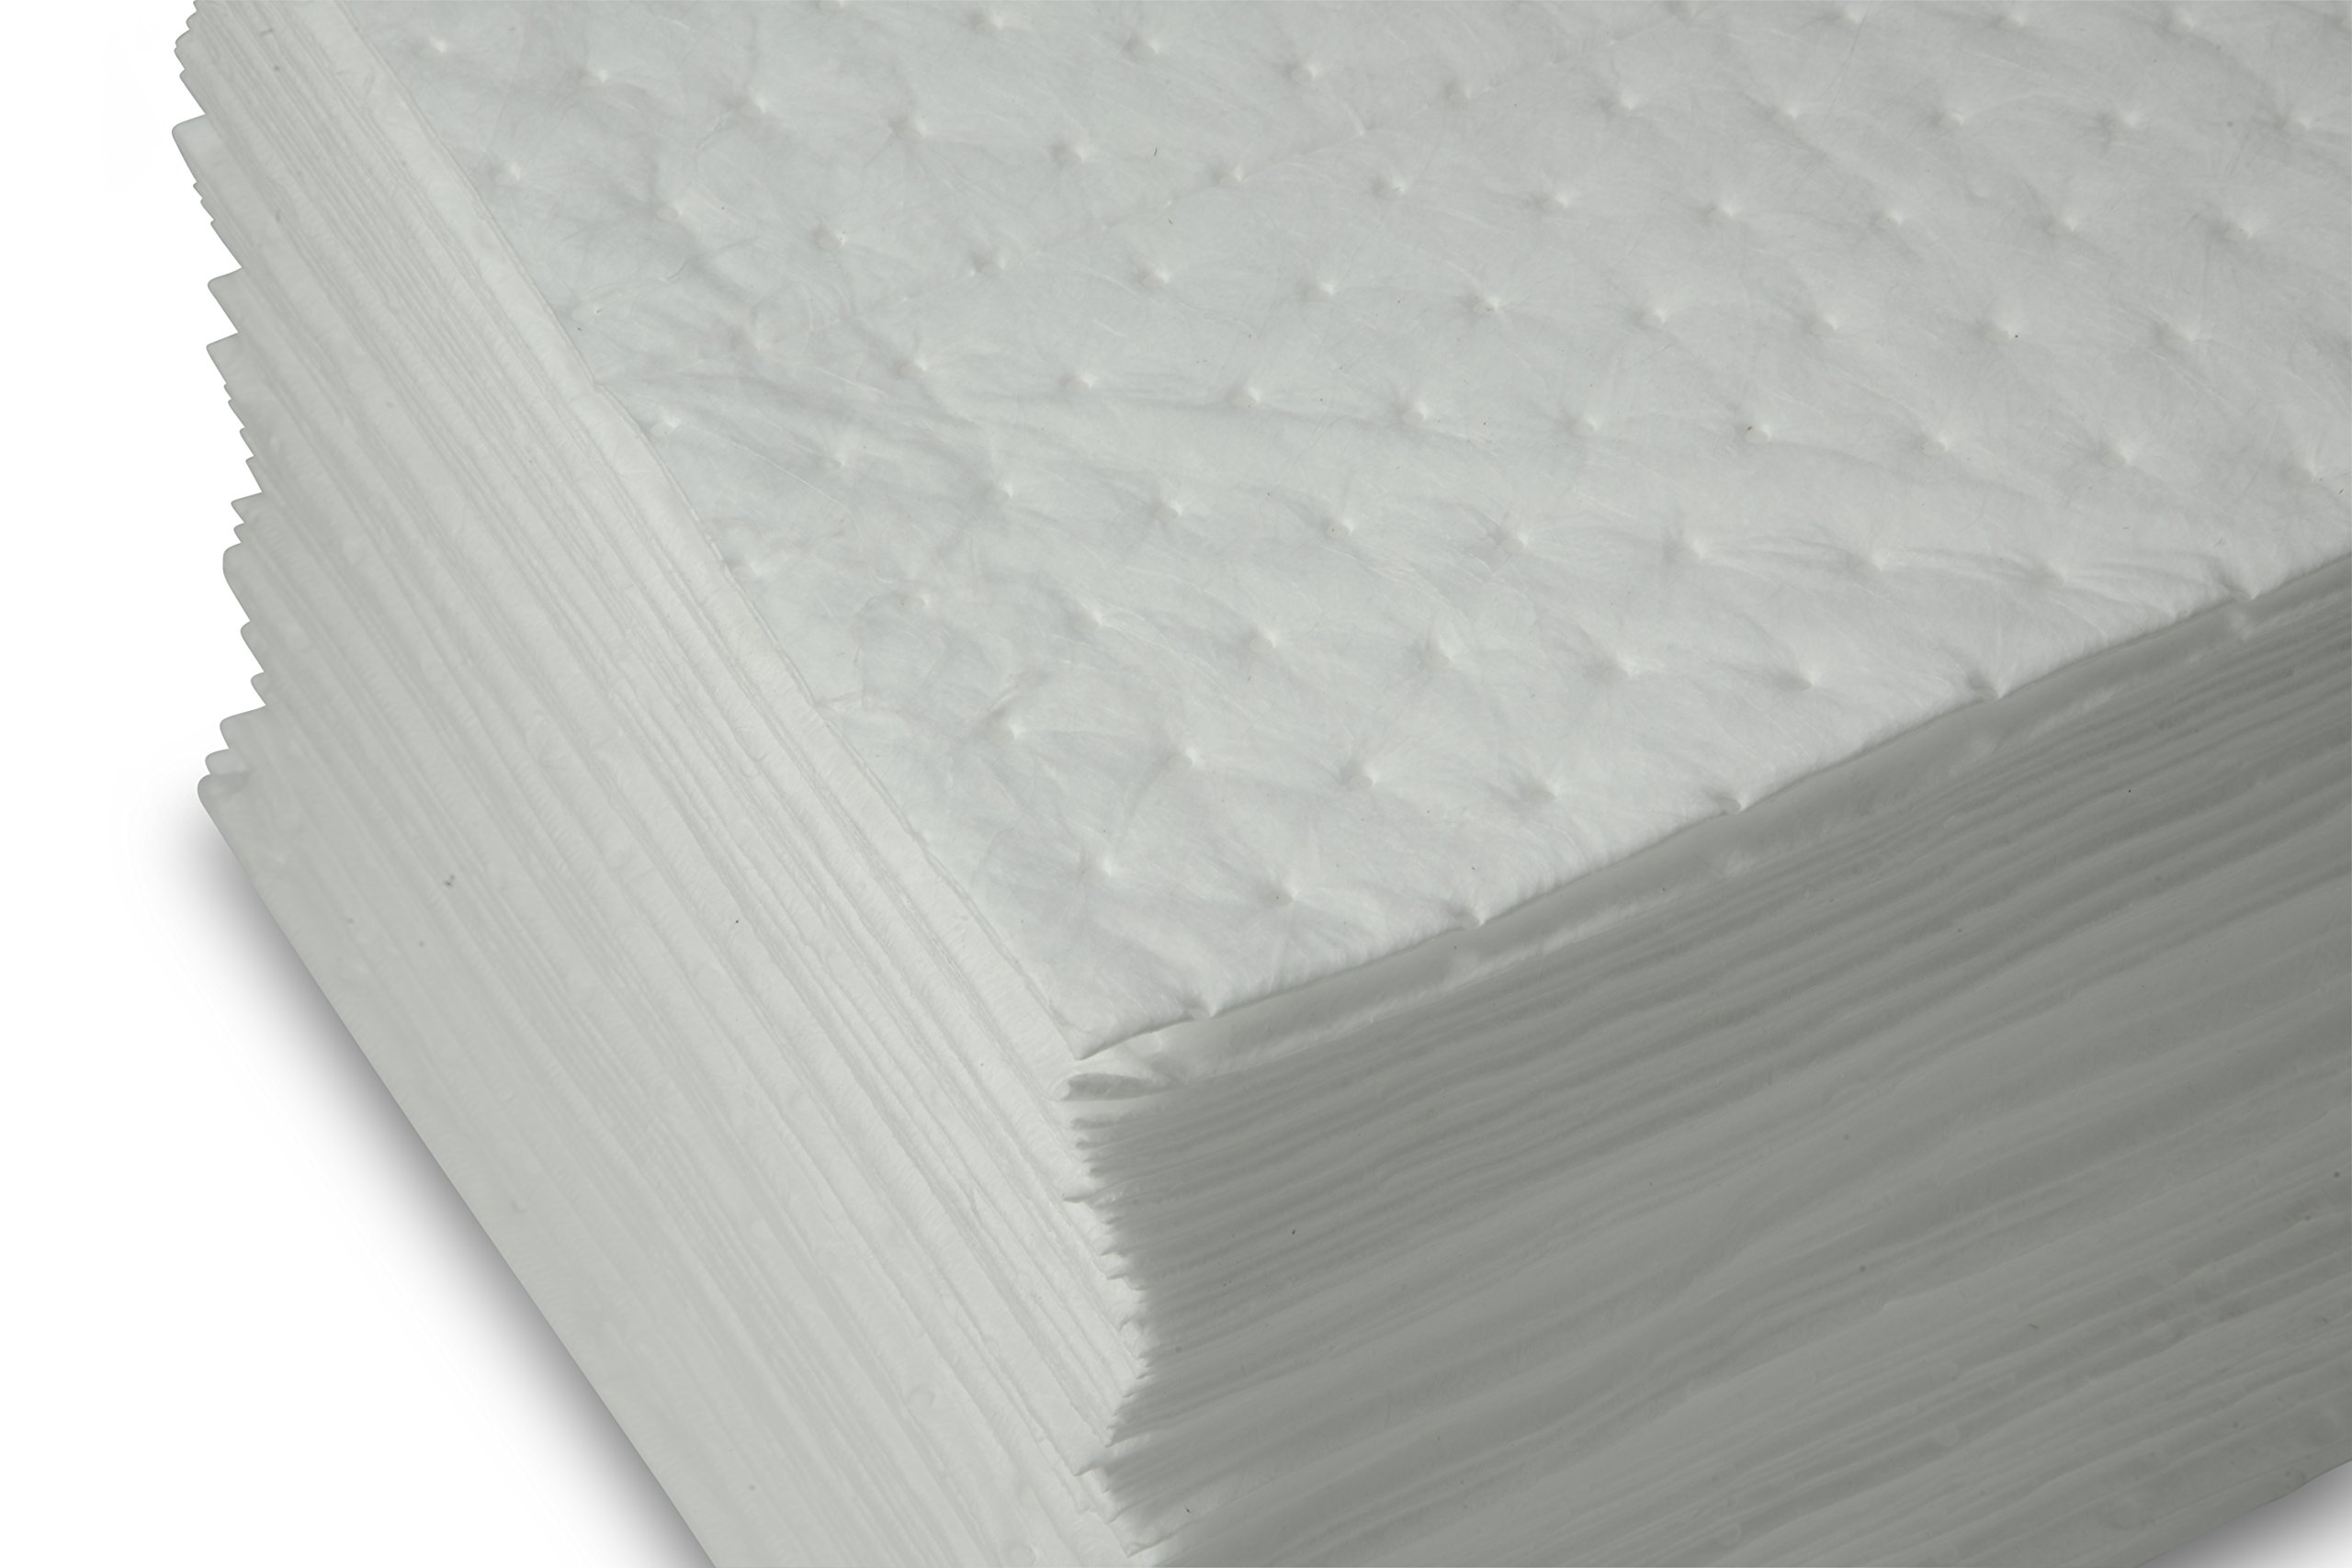 AABACO Oil Only ABSORBENT PADS - Heavy Weight Sheets (100ct Per Pack) 15 X 17 Inch High Absorbency for OIL and FUEL SPILLS - Repels Water, Absorbing up to 24 Gallons - Cleanup & Automotive (100)